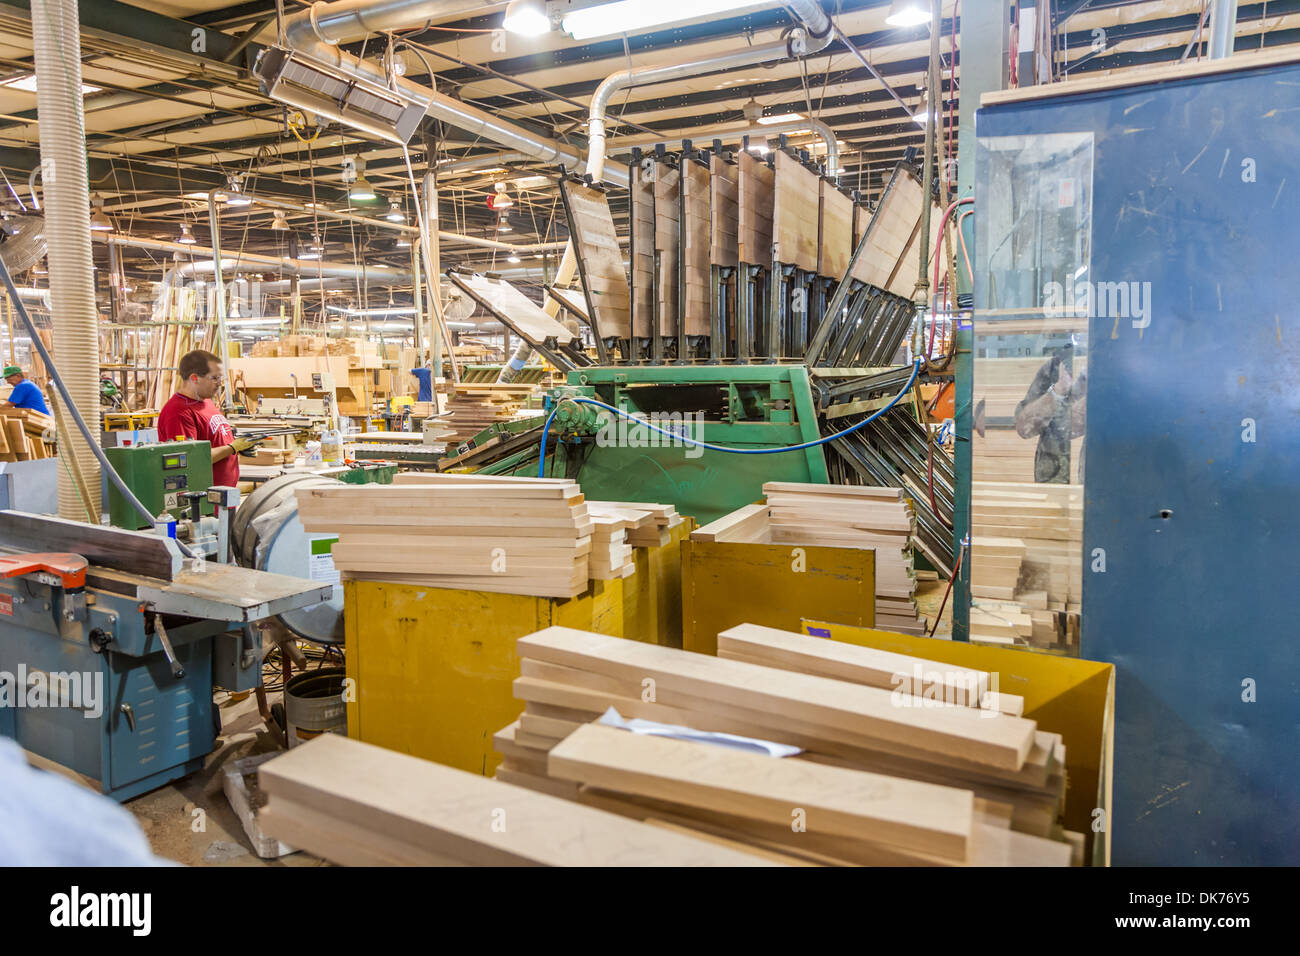 Cabinet Shop At Tiffin Motorhomes Factory In Red Bay, Alabama, USA